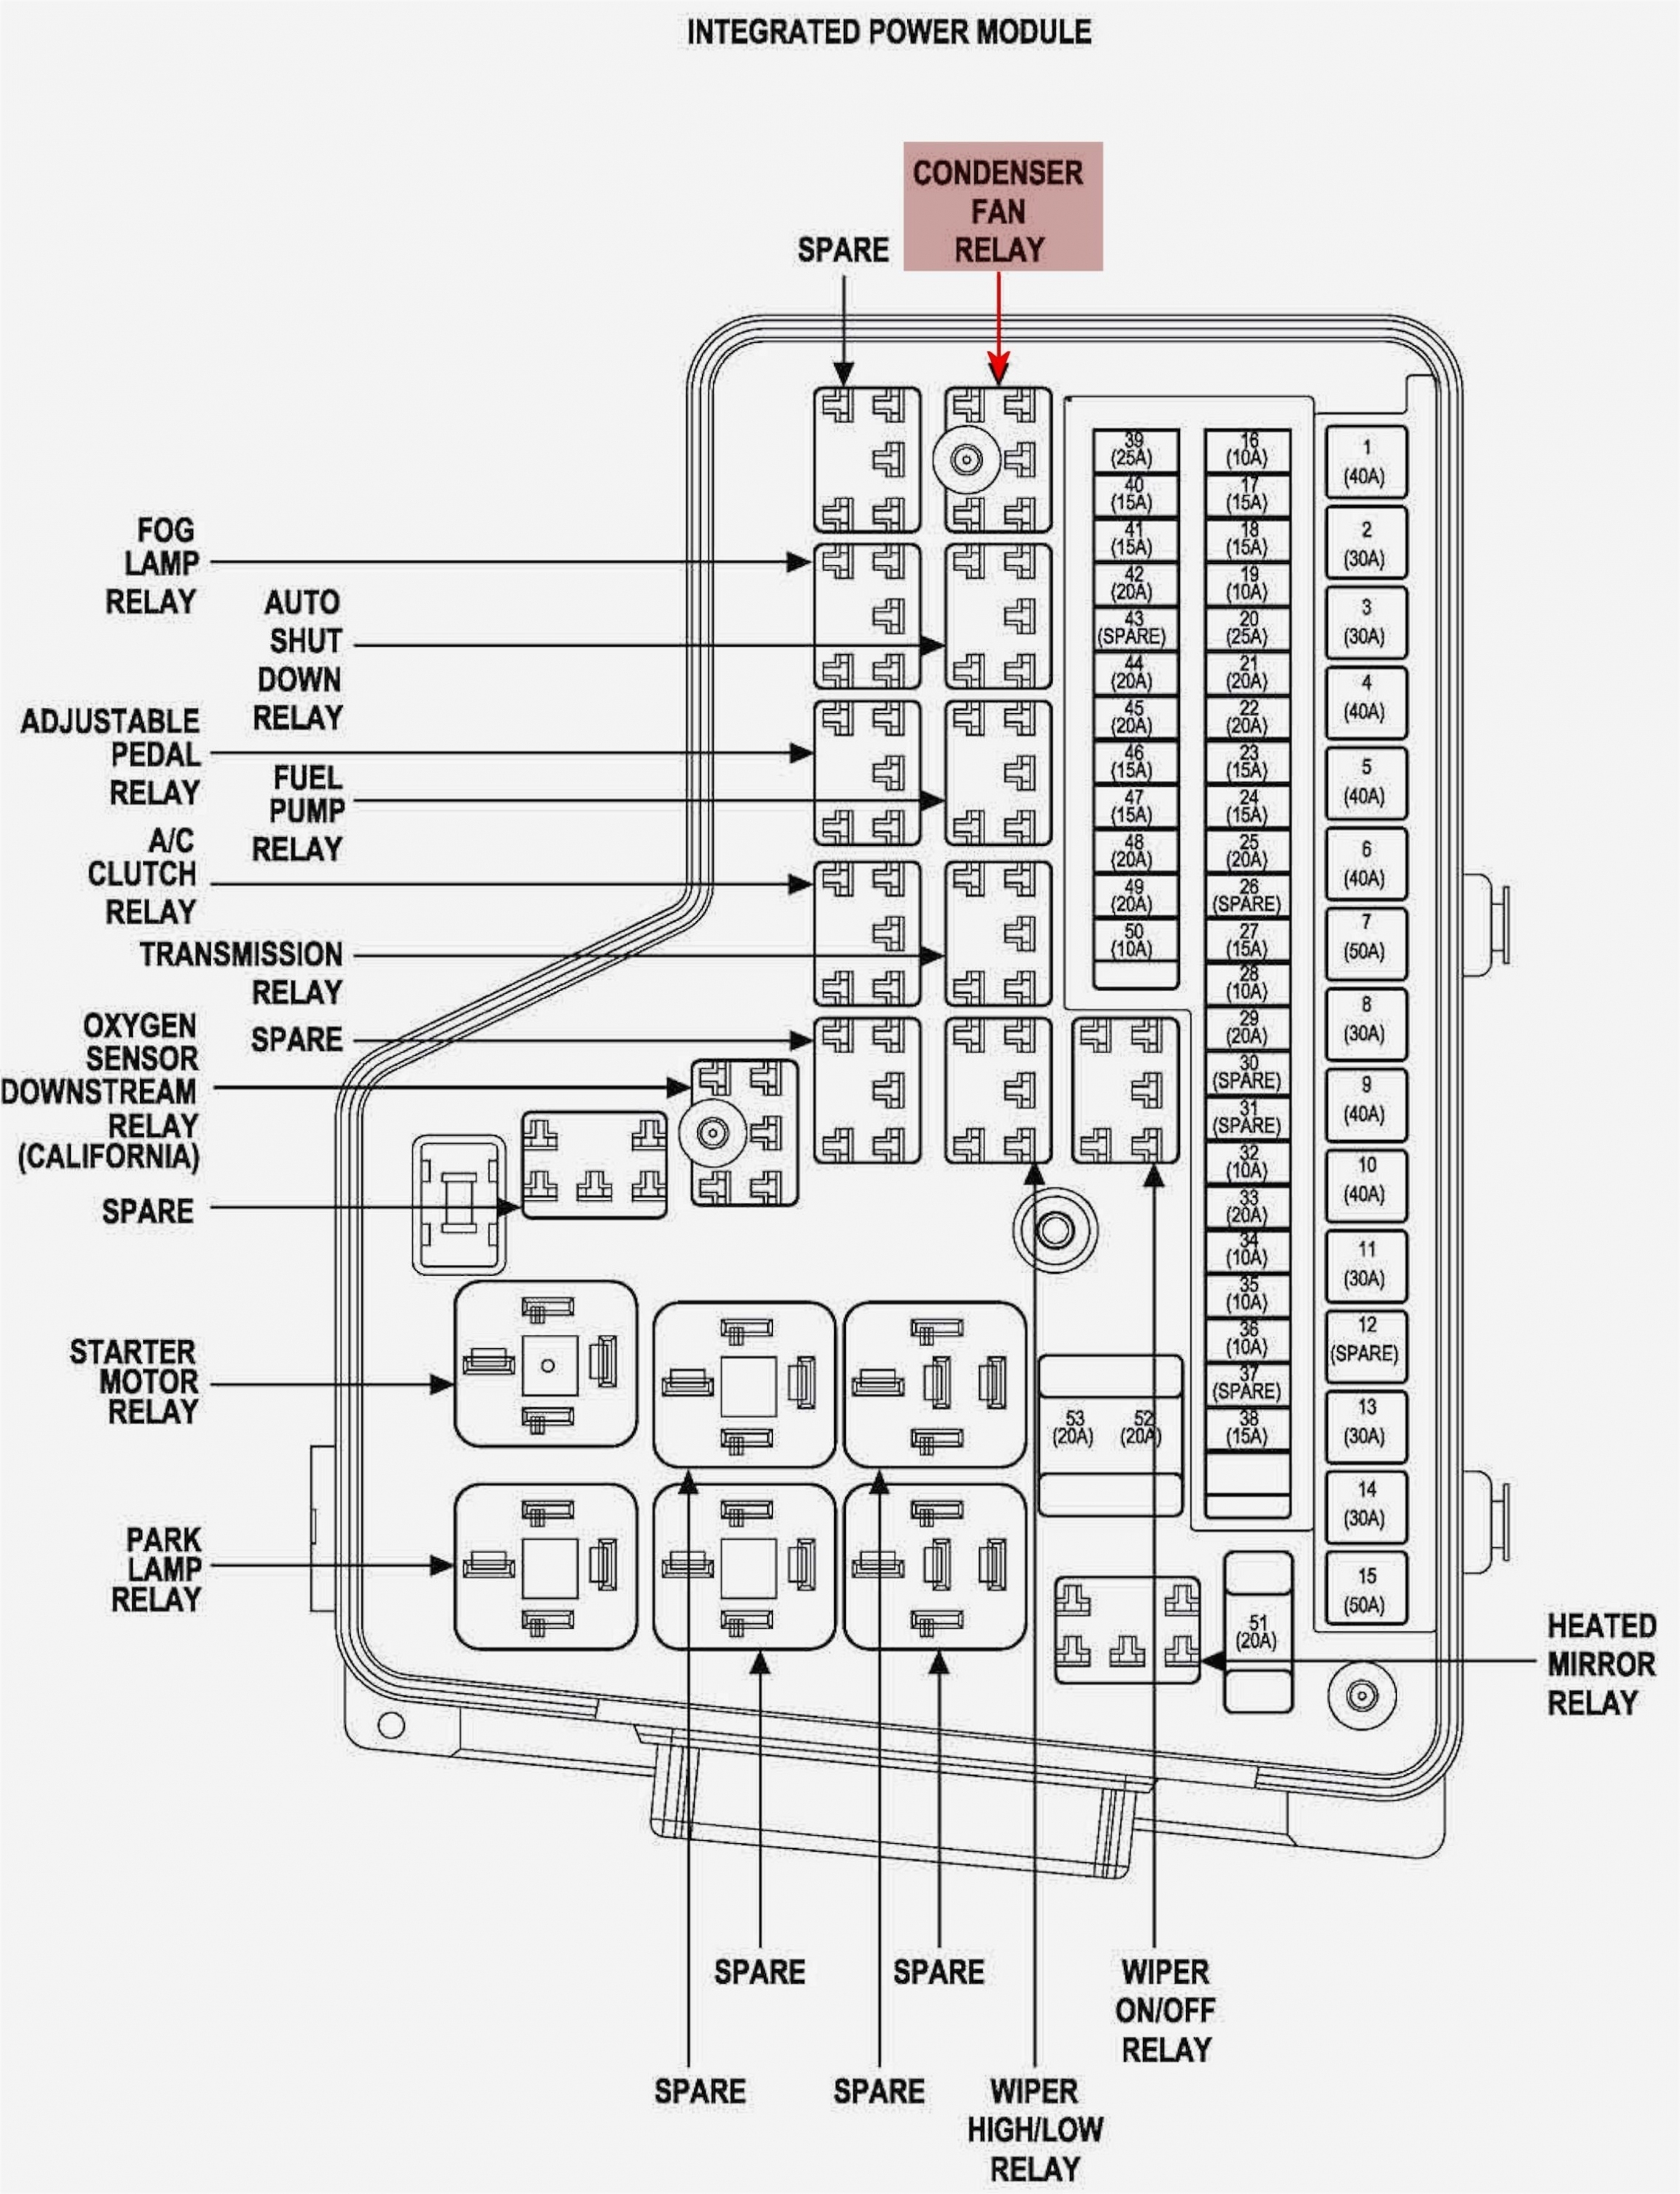 2005 F250 Fuse Box Diagram - Hanenhuusholli